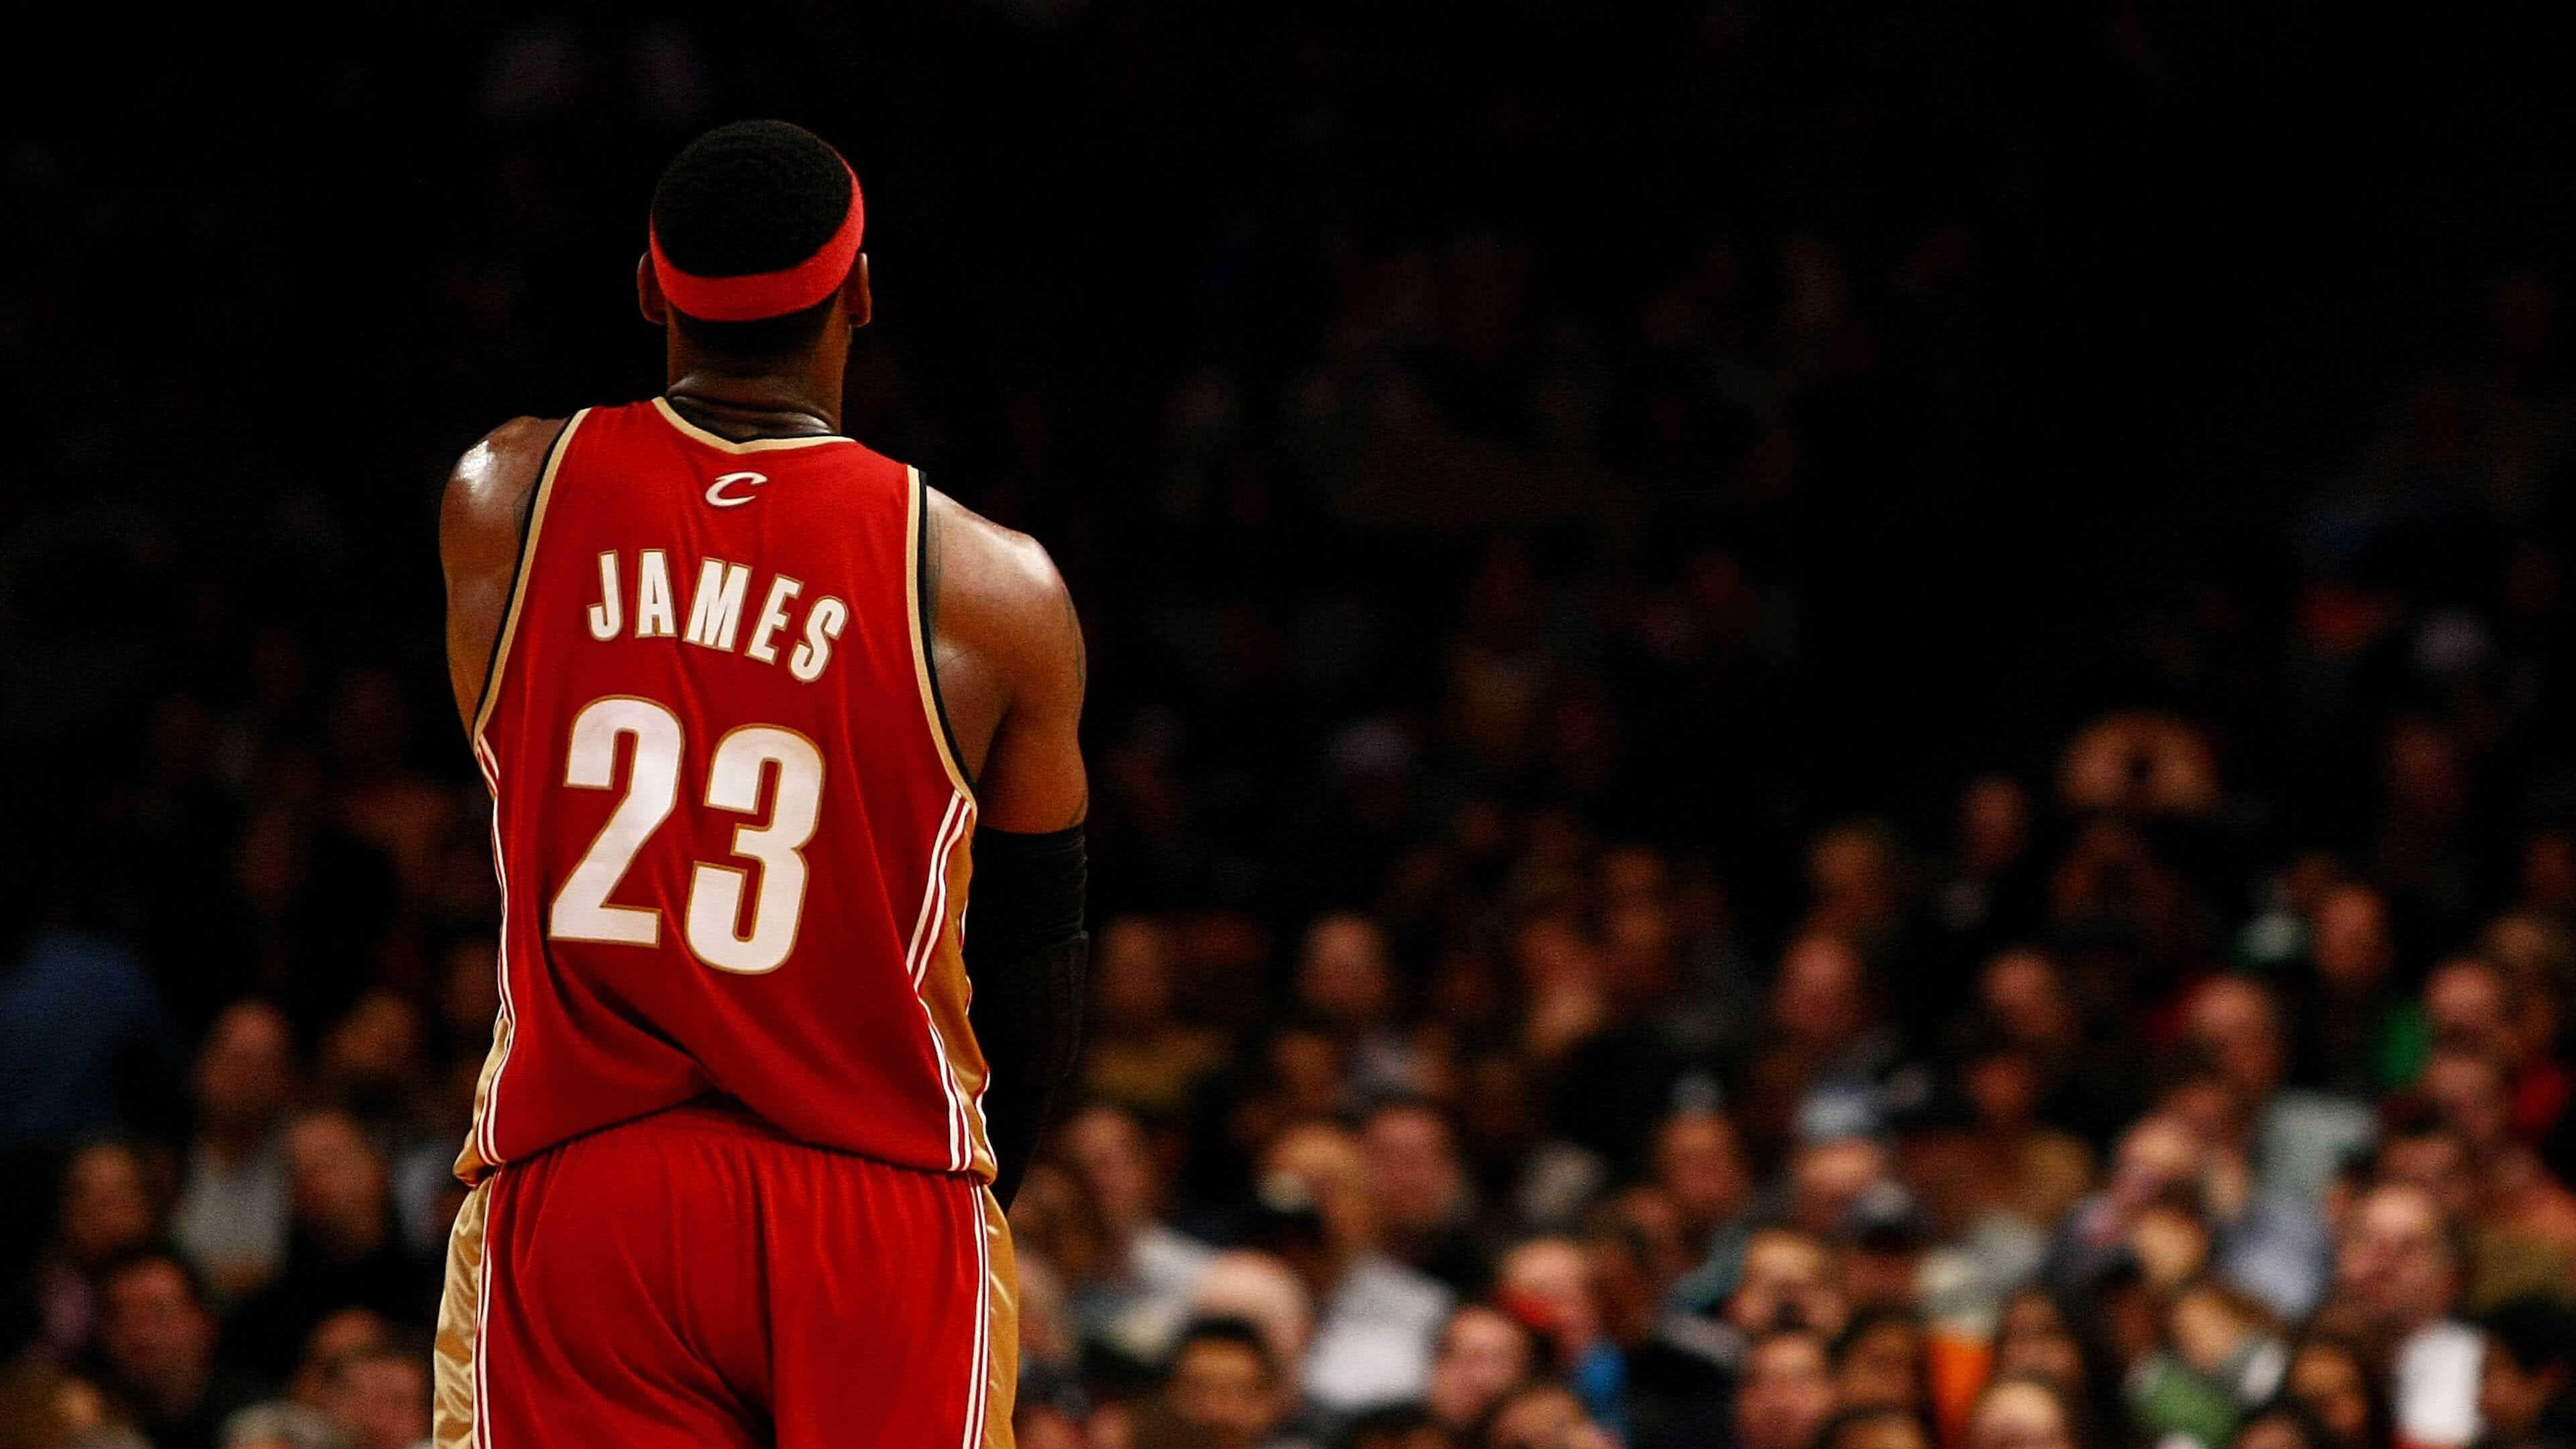 lebron james basketball uhd 4k wallpaper